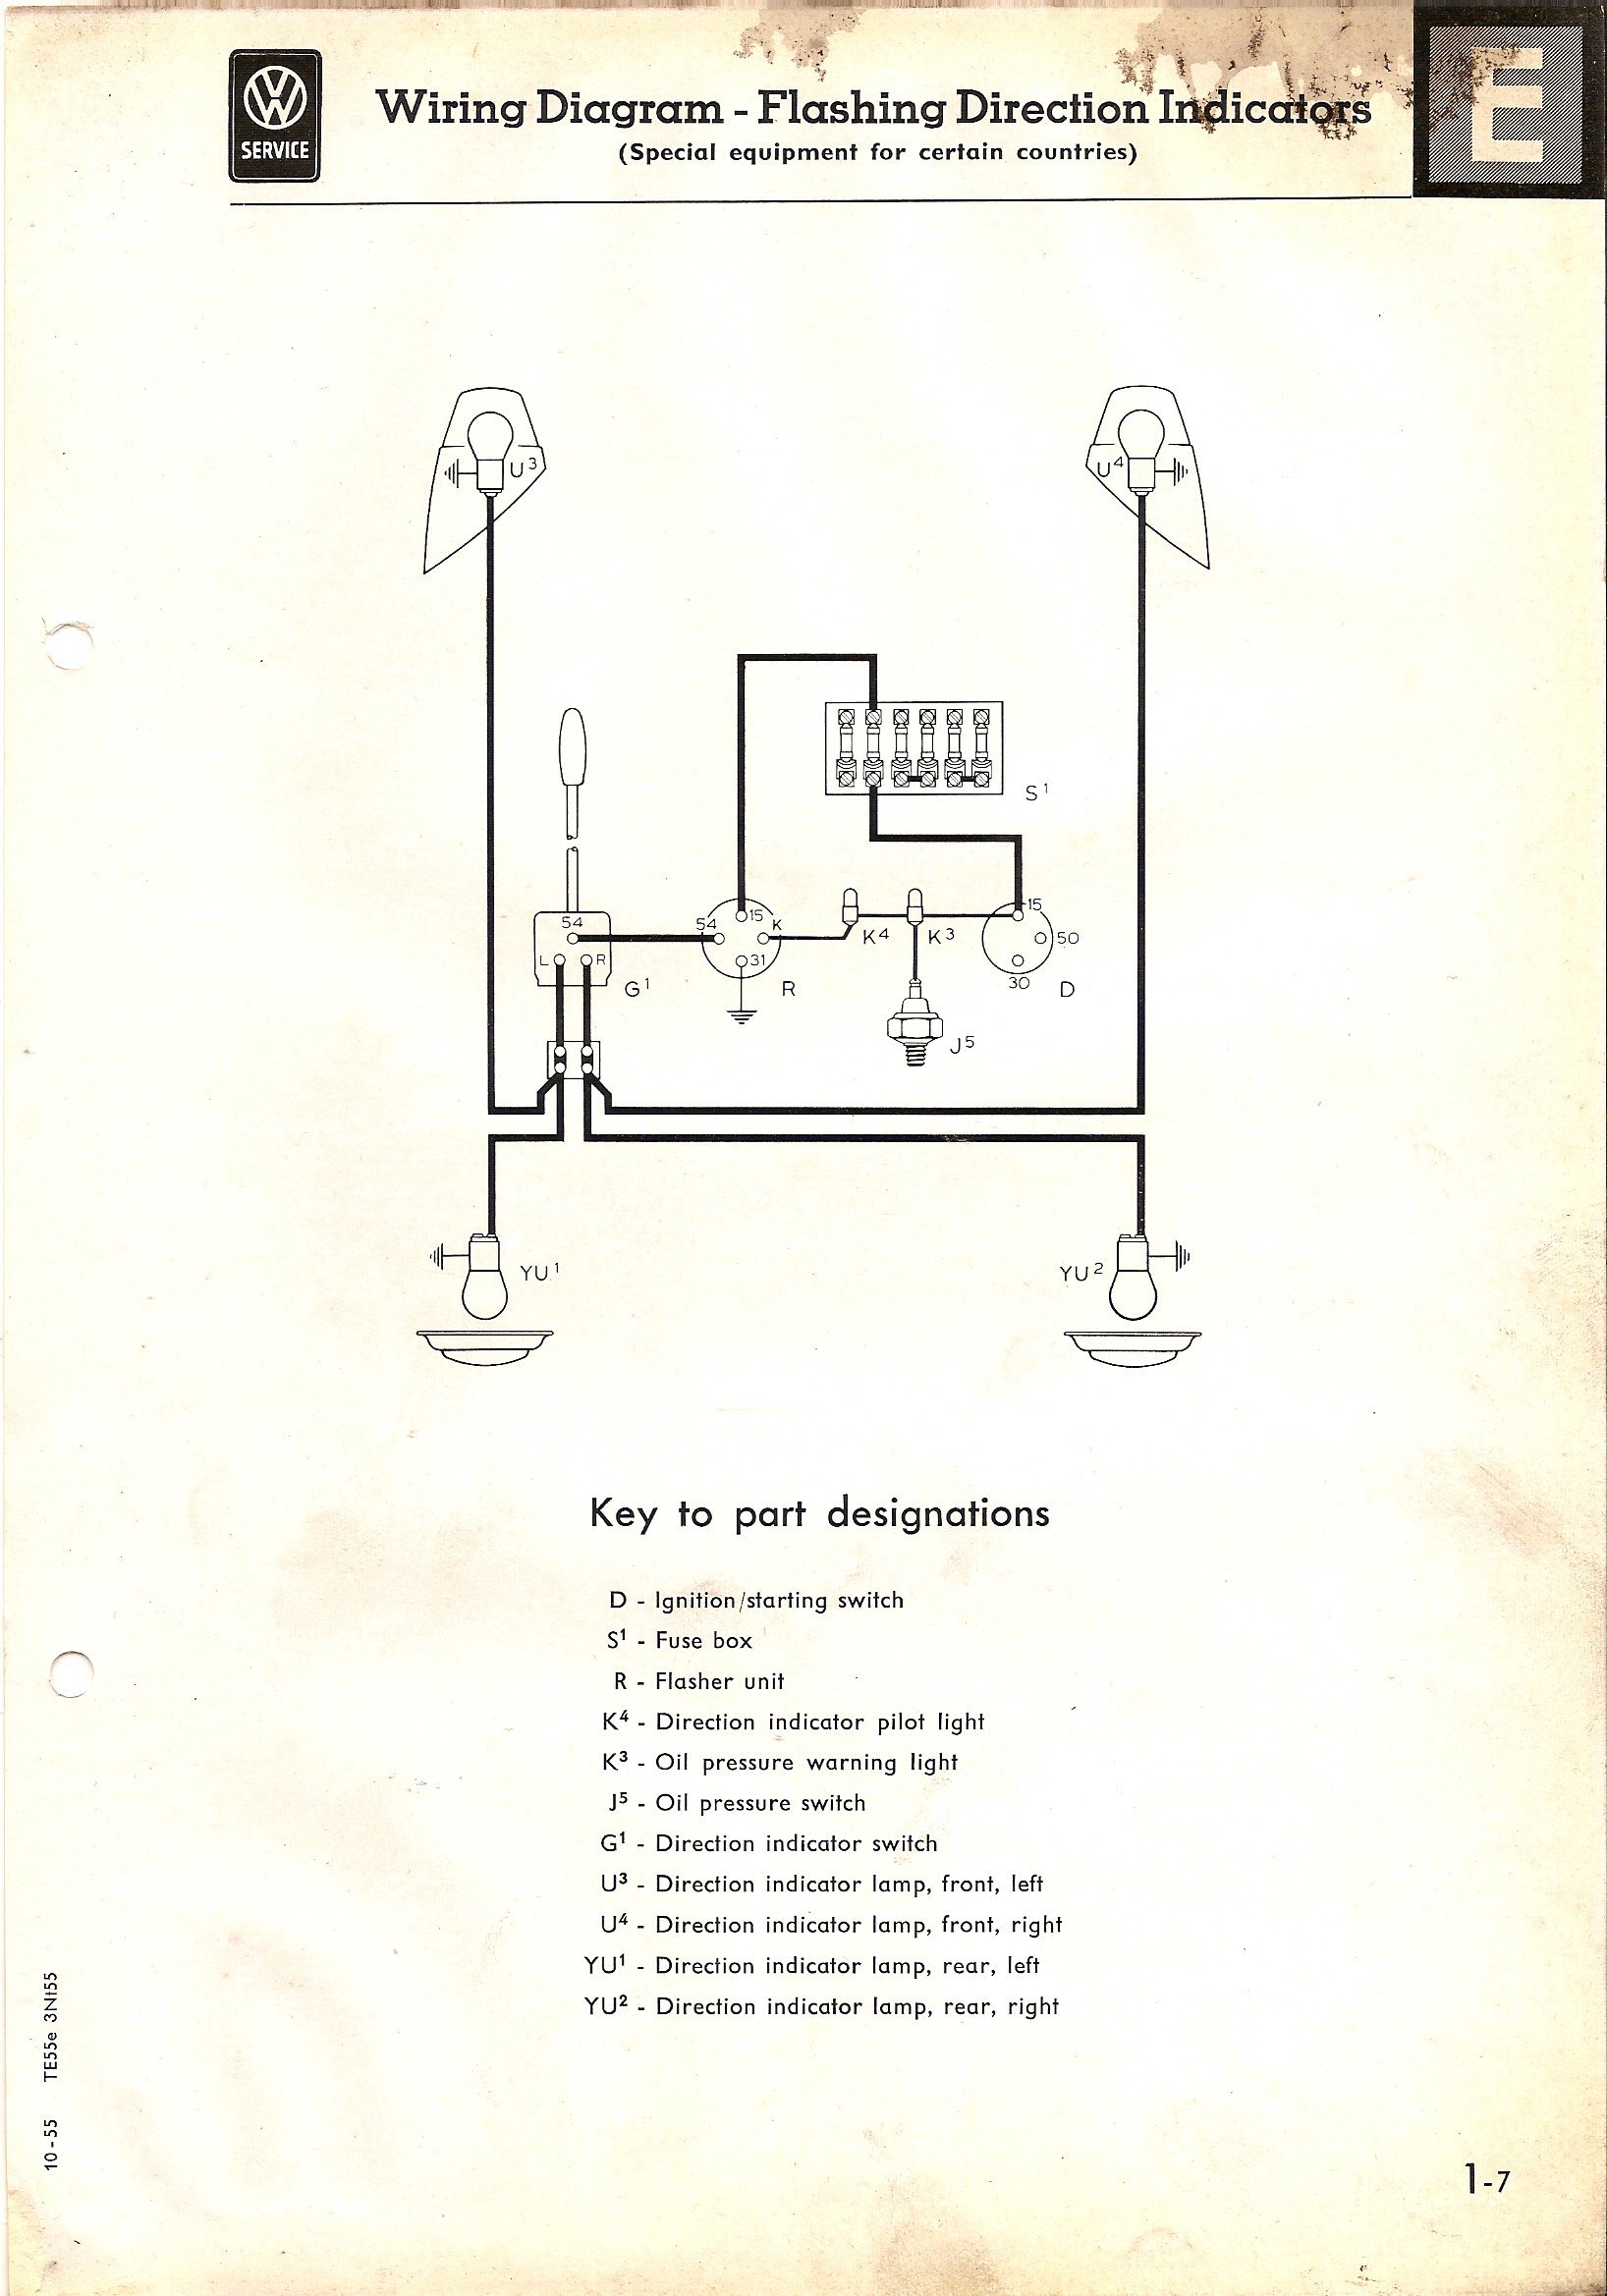 Type 2 Wiring Diagrams Electric Meter Diagram Oil